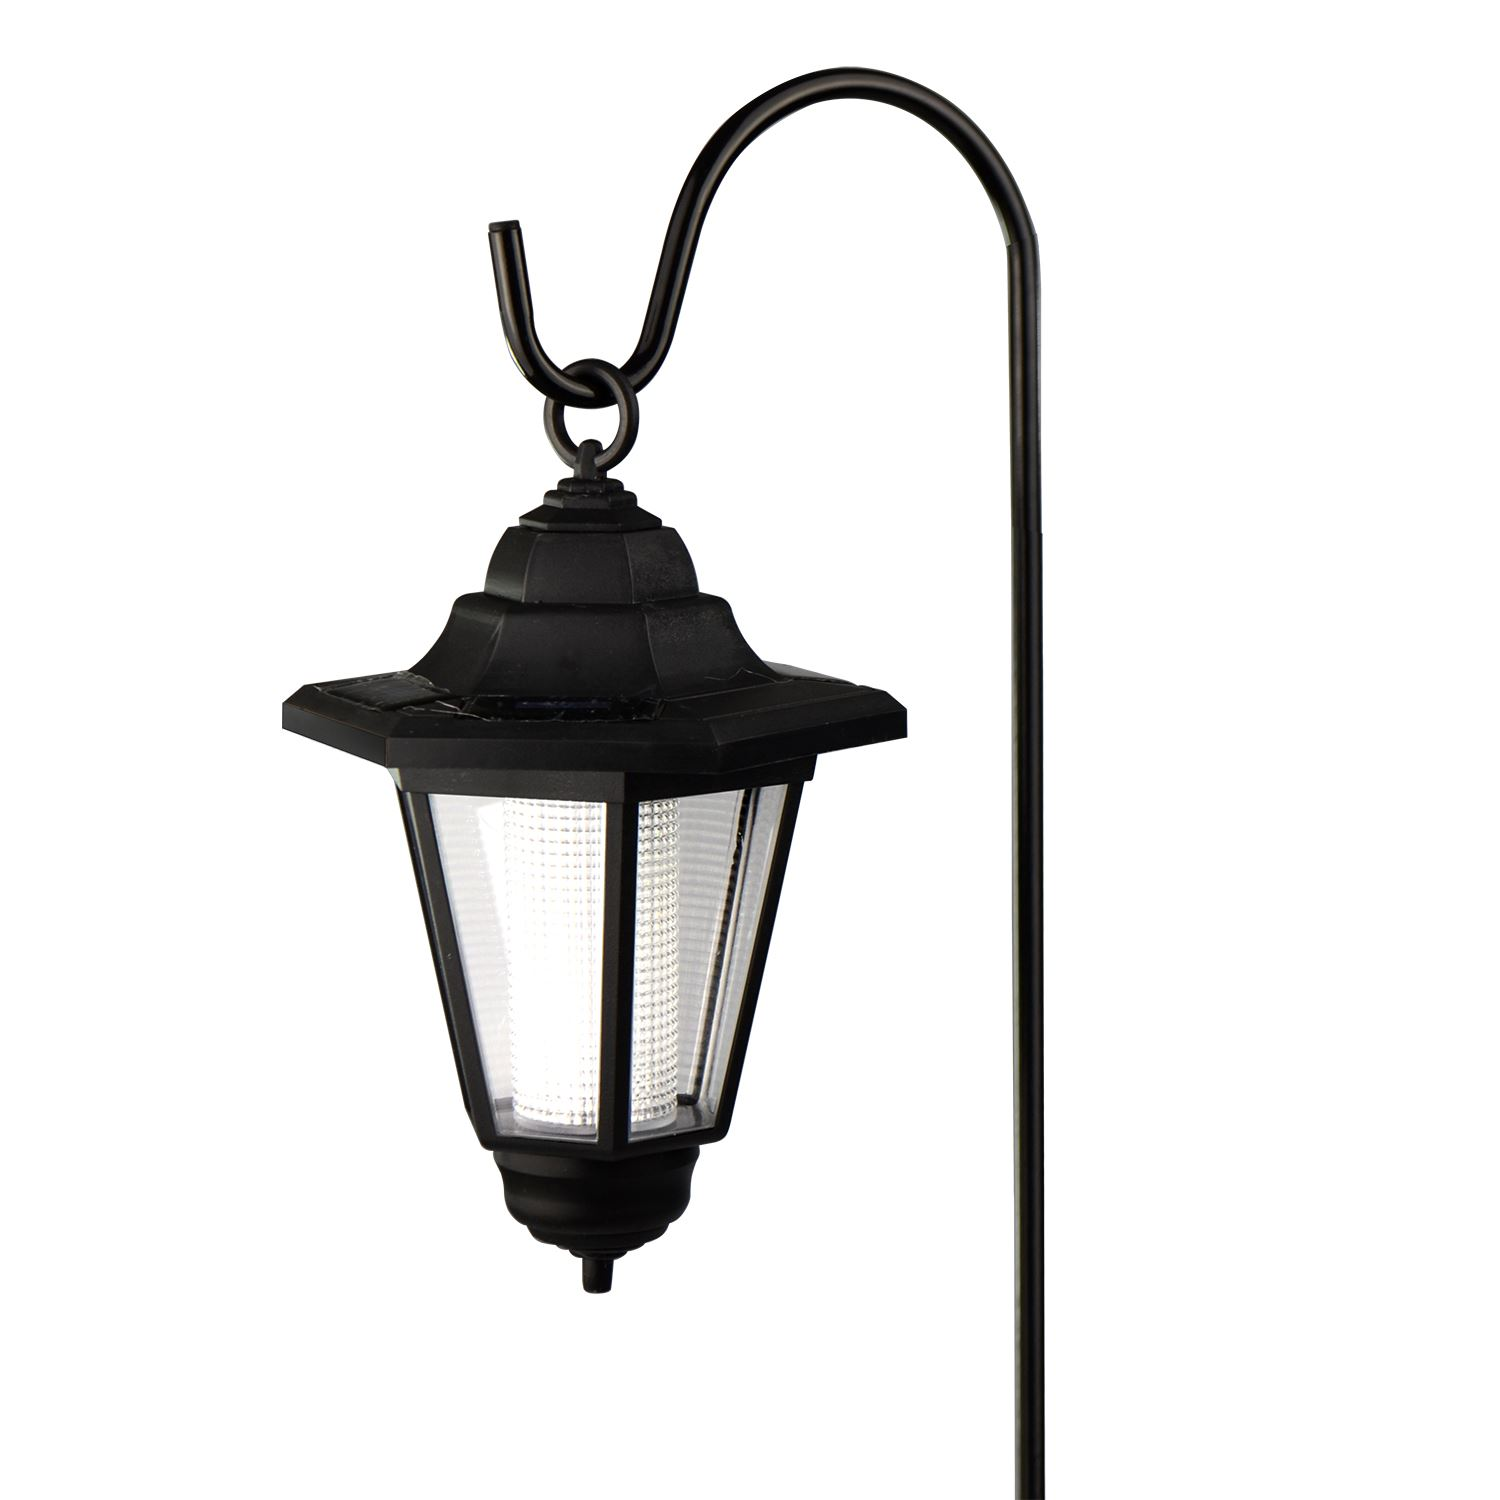 Solar Powered Hanging Lantern With Sheperds Hook Outdoor